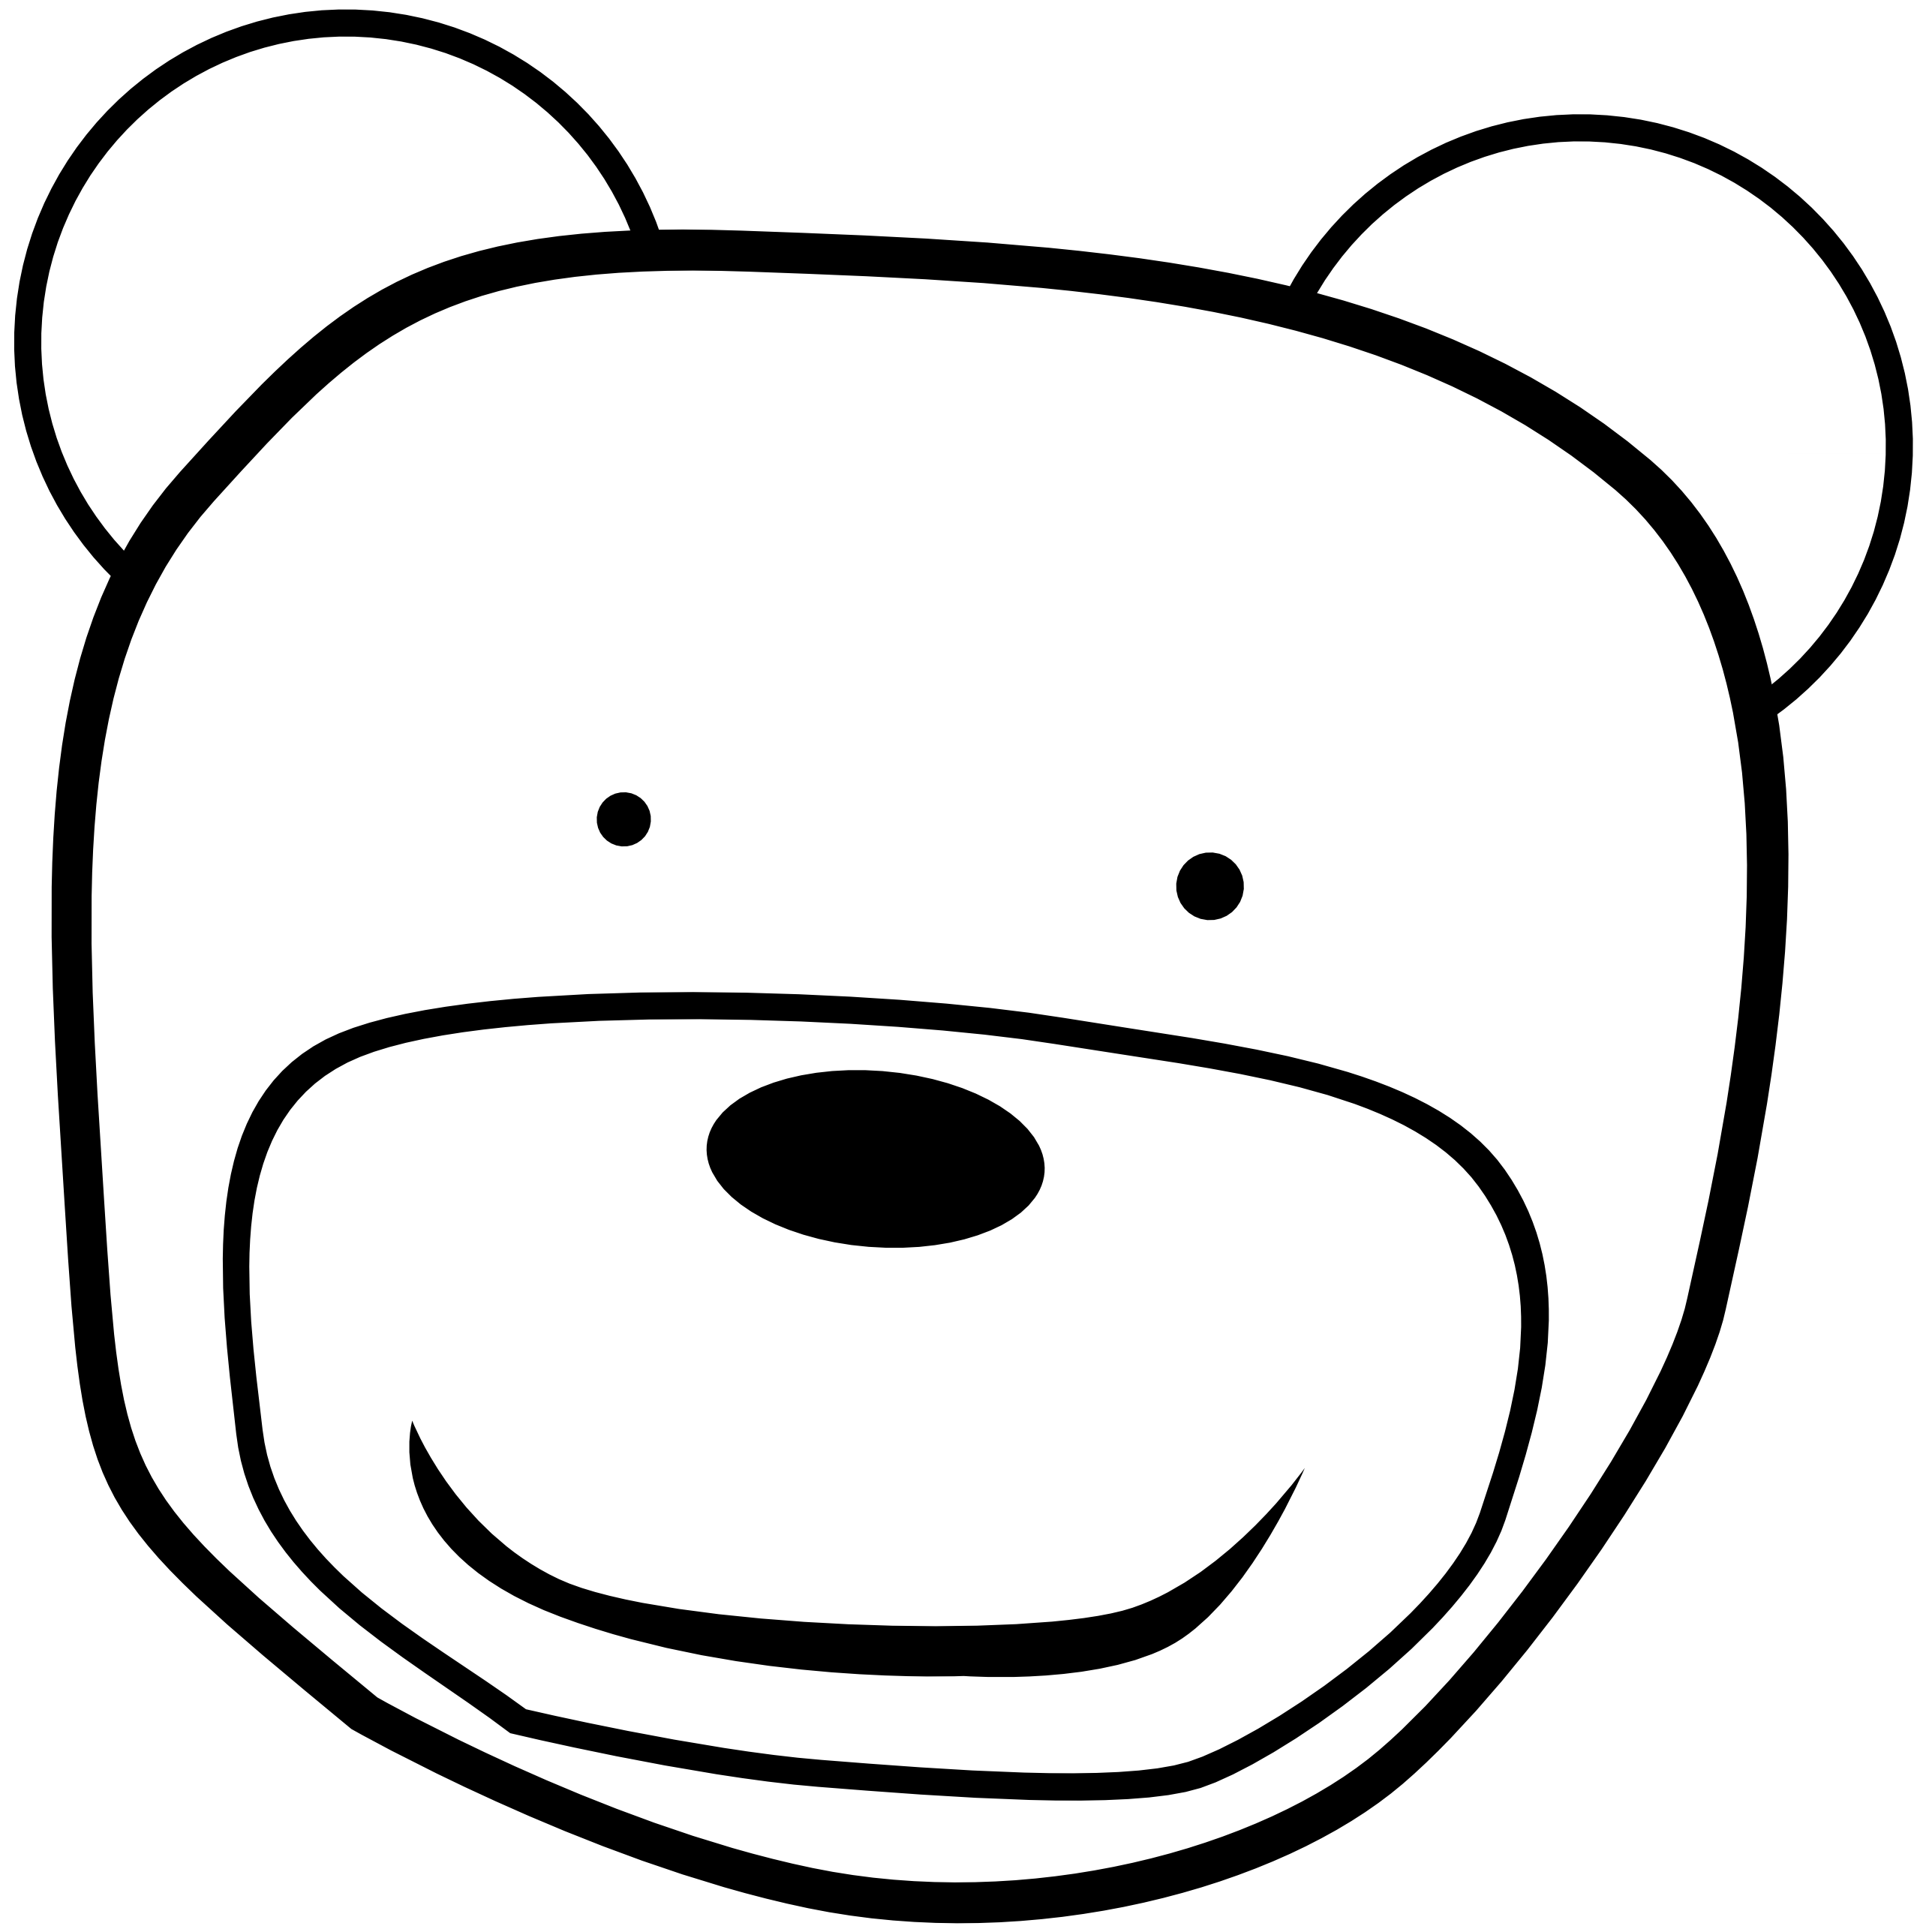 Grizzly standing panda free. Head clipart black bear